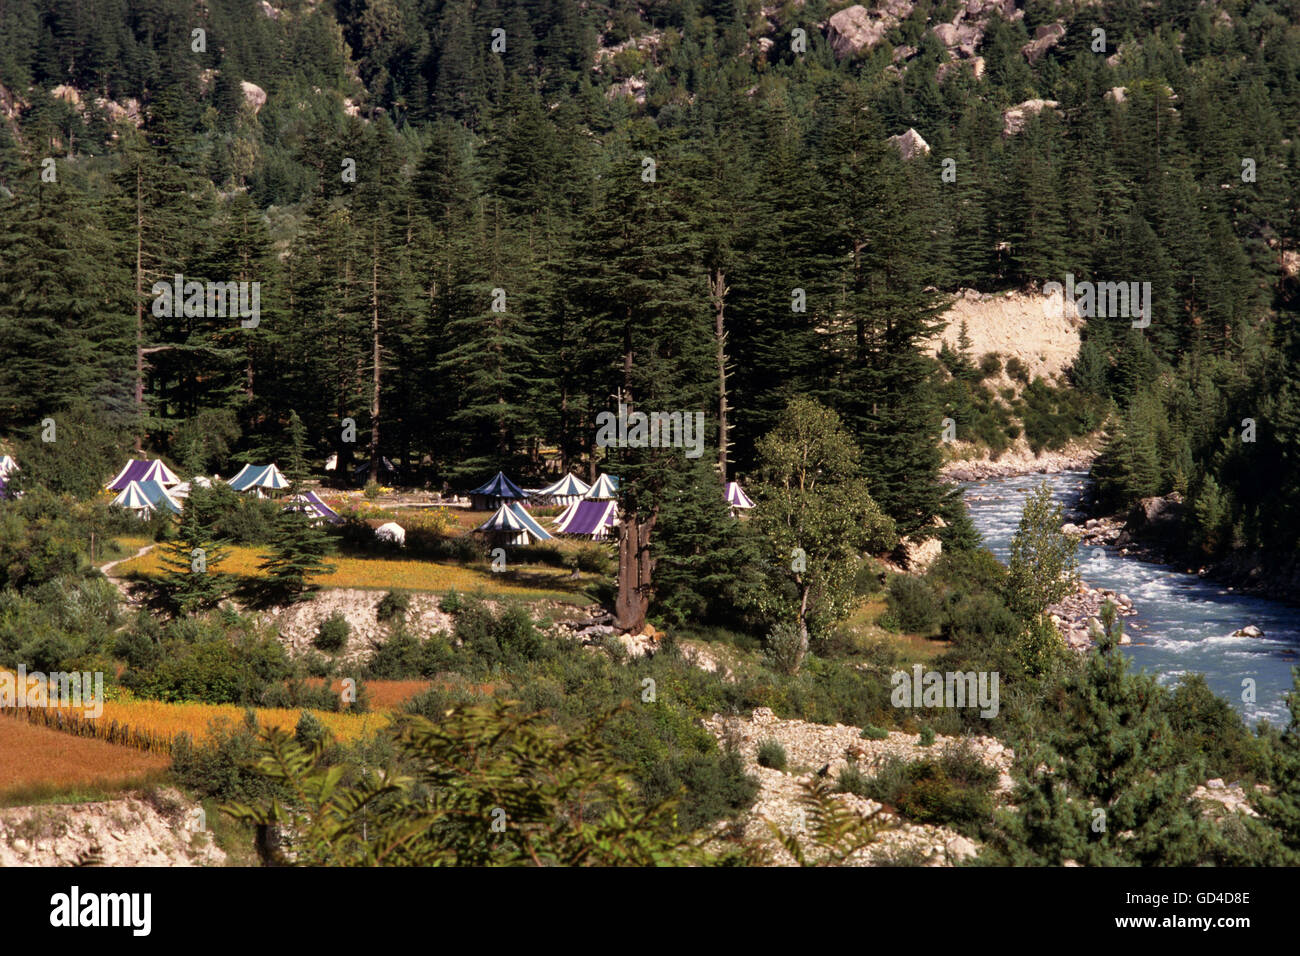 Banjara camps along the sparkling Baspa river - Stock Image